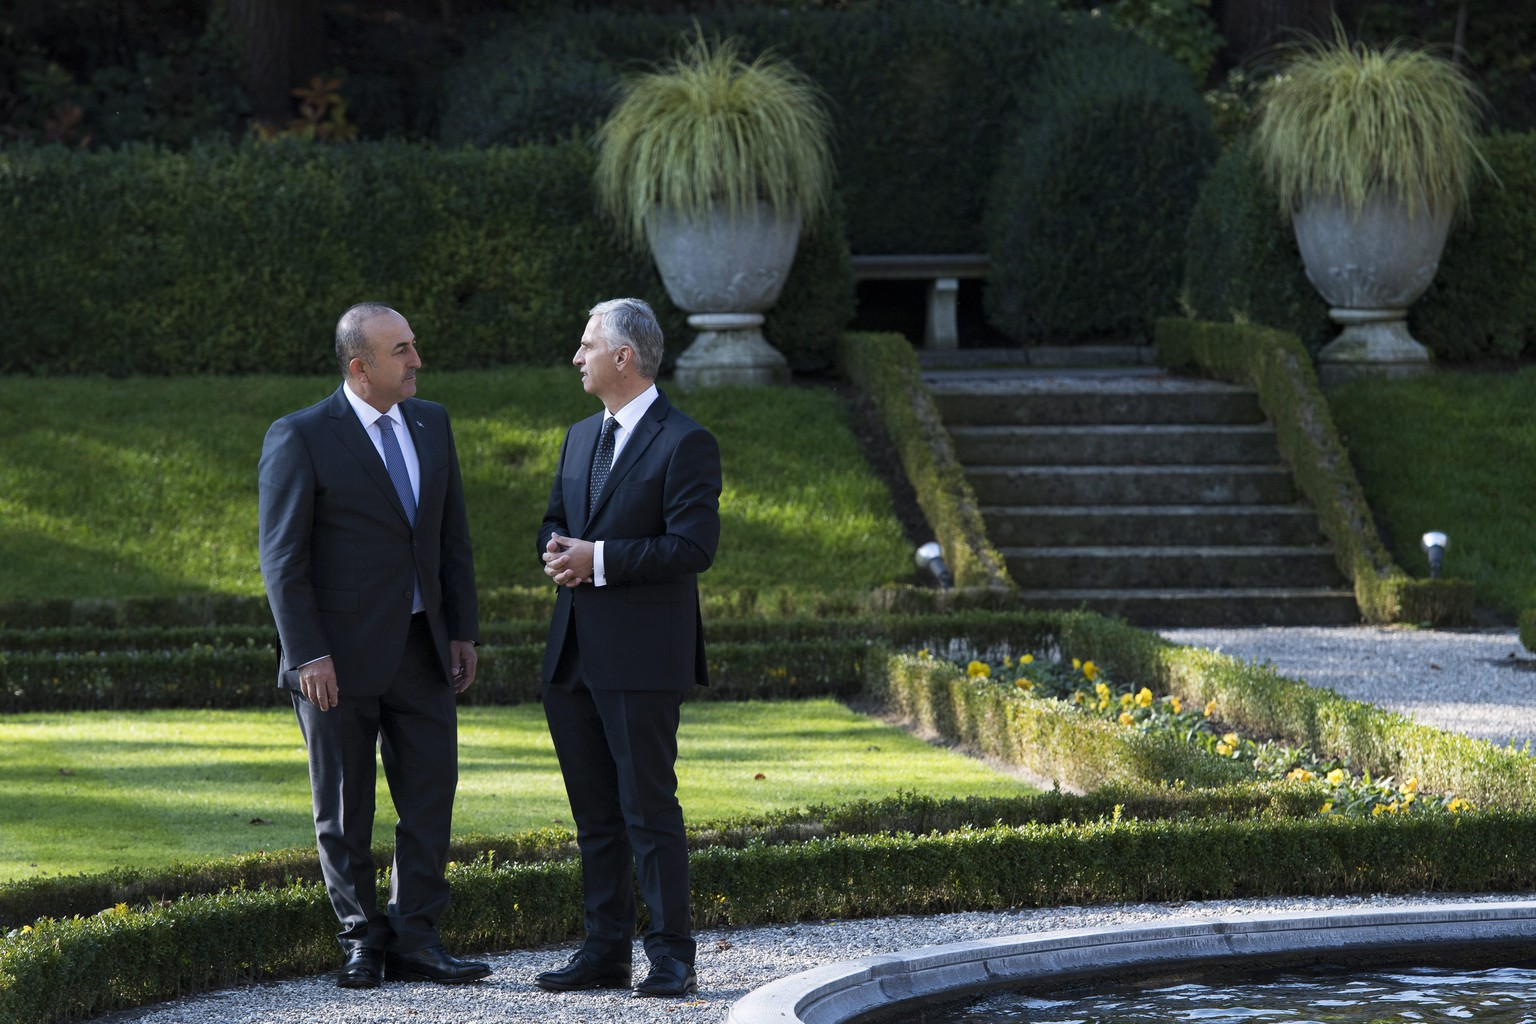 epa05615491 Mevlut Cavusoglu, Minister of Foreign Affairs of the Republic of Turkey, (L), and Swiss Federal Councillor and minister of Foreign Affairs Didier Burkhalter, (R), speak together at the Lohn Residence in Kehrsatz near Bern, Switzerland, 03 November 2016. Cavusoglu is in Switzerland for an official working one-day visit.  EPA/ANTHONY ANEX